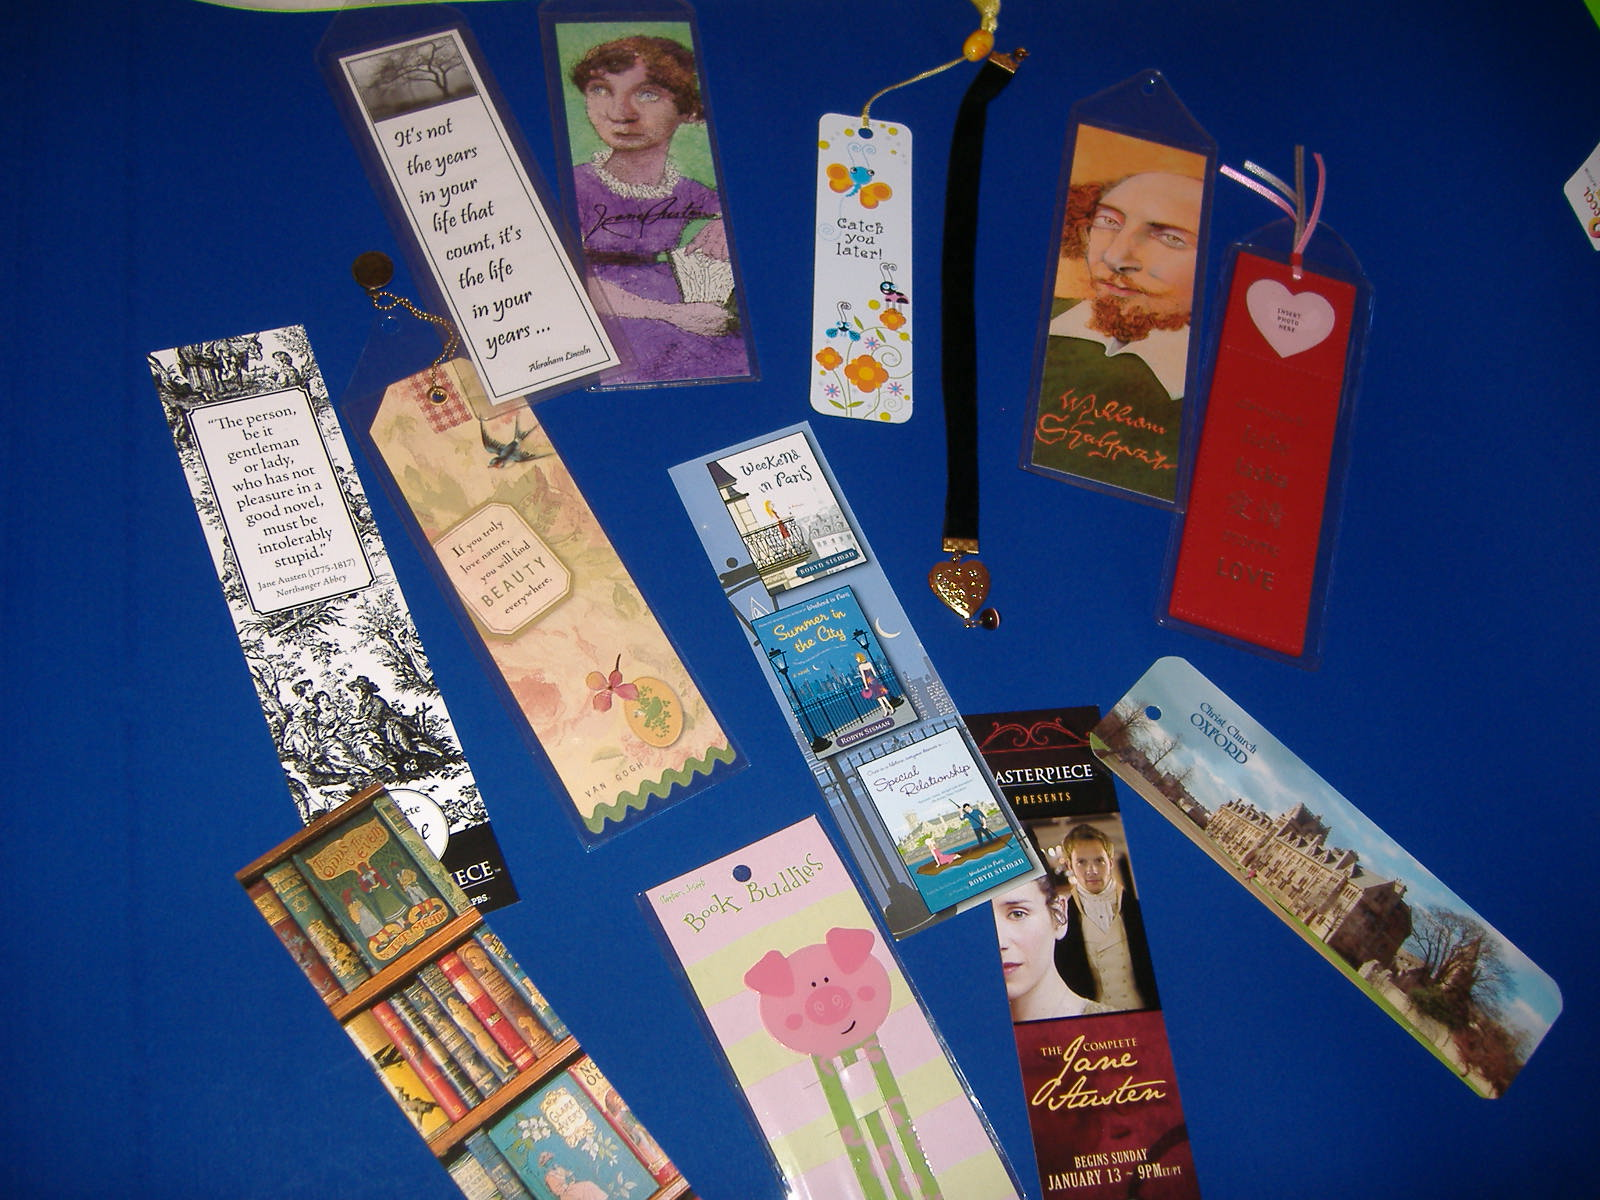 [bookmarks]